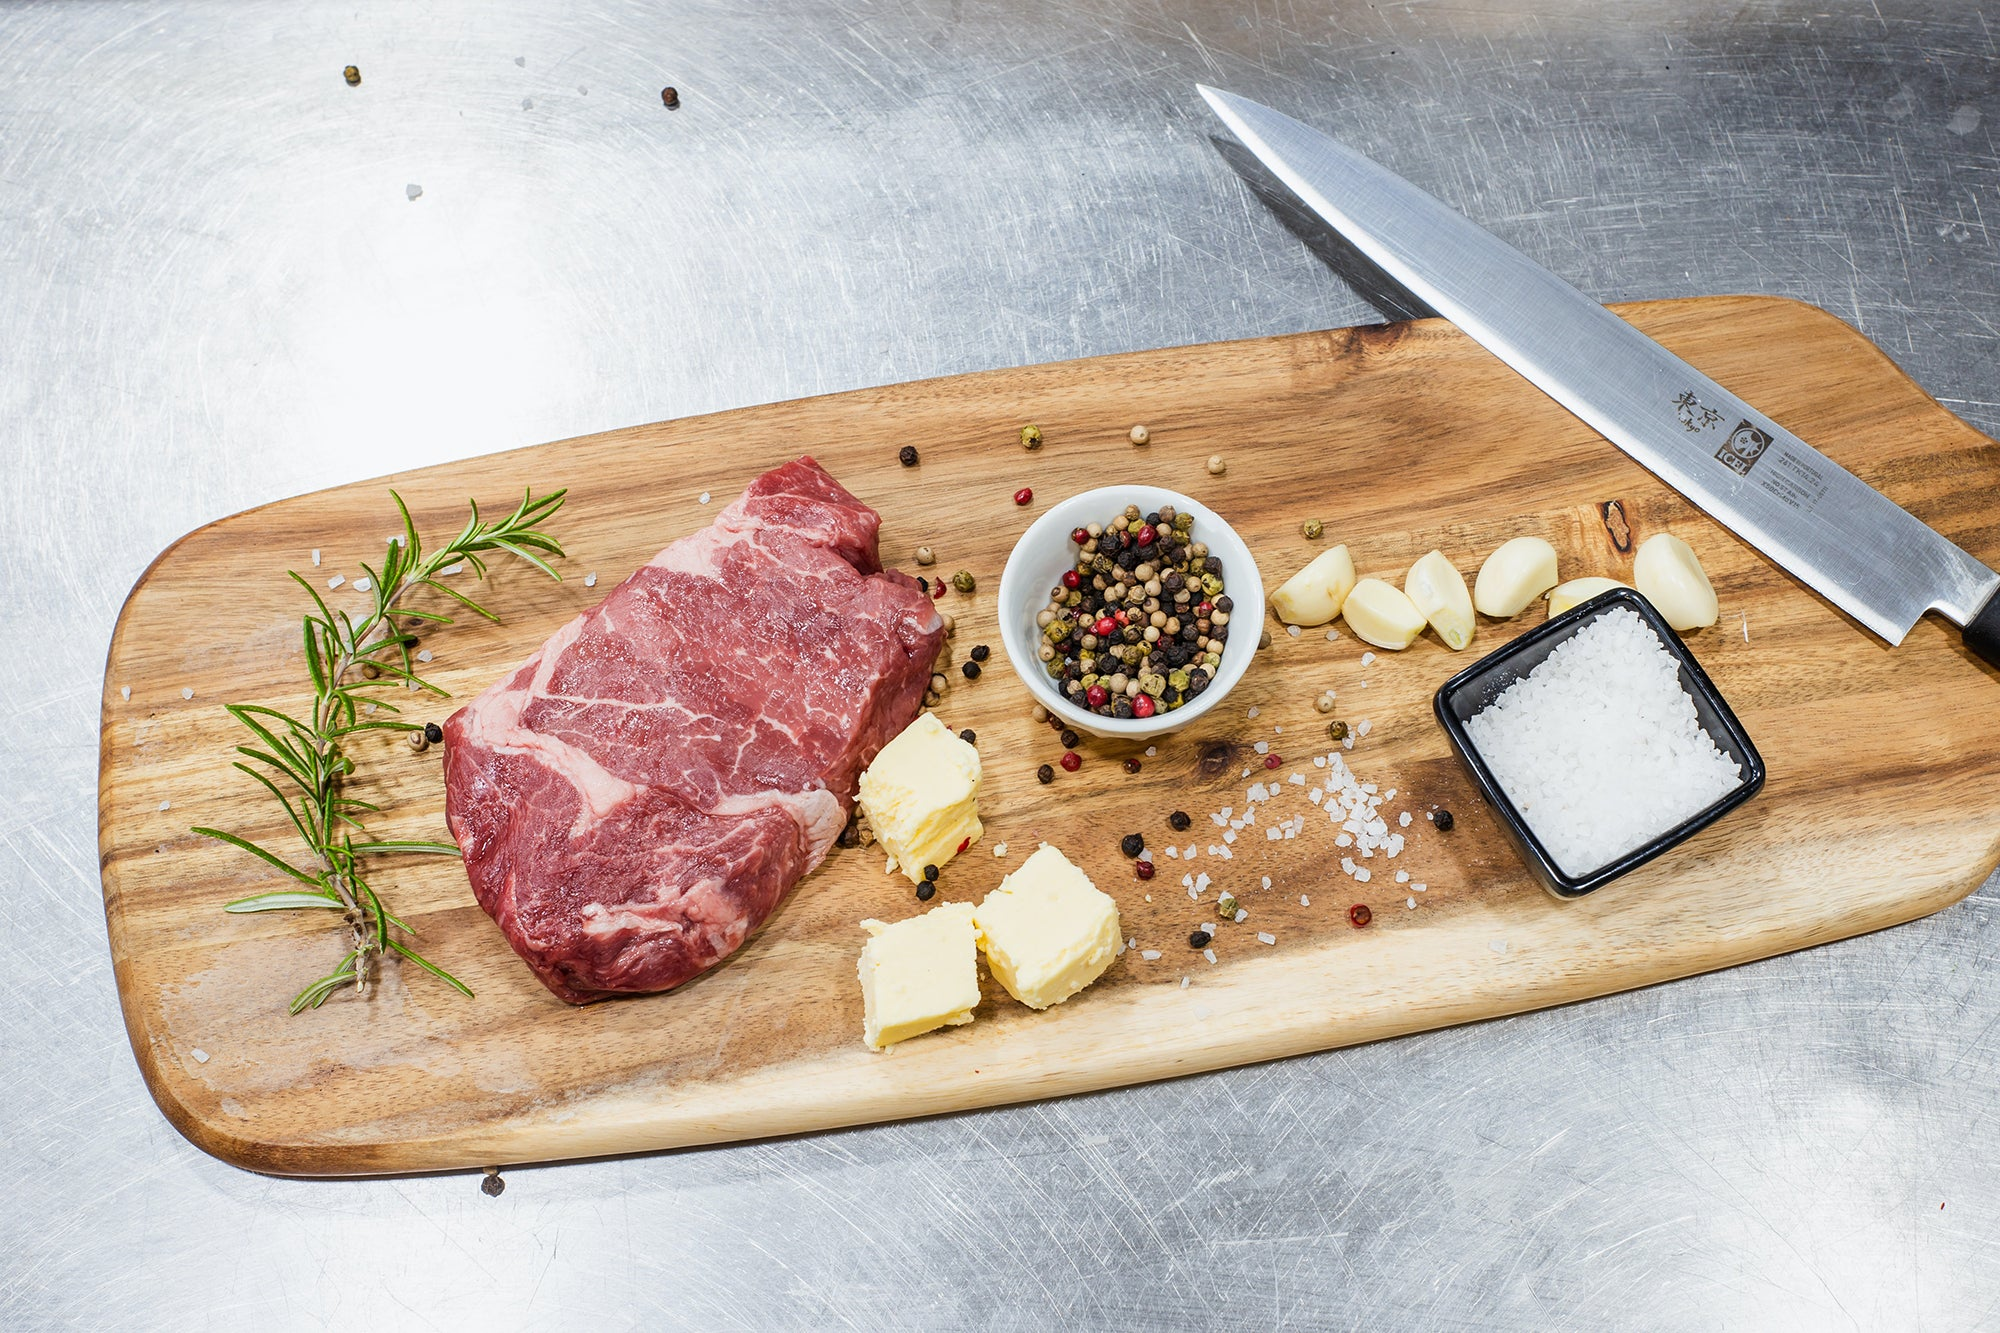 meat, cheese, pepper, and salt on a wood board next to a kitchen knife